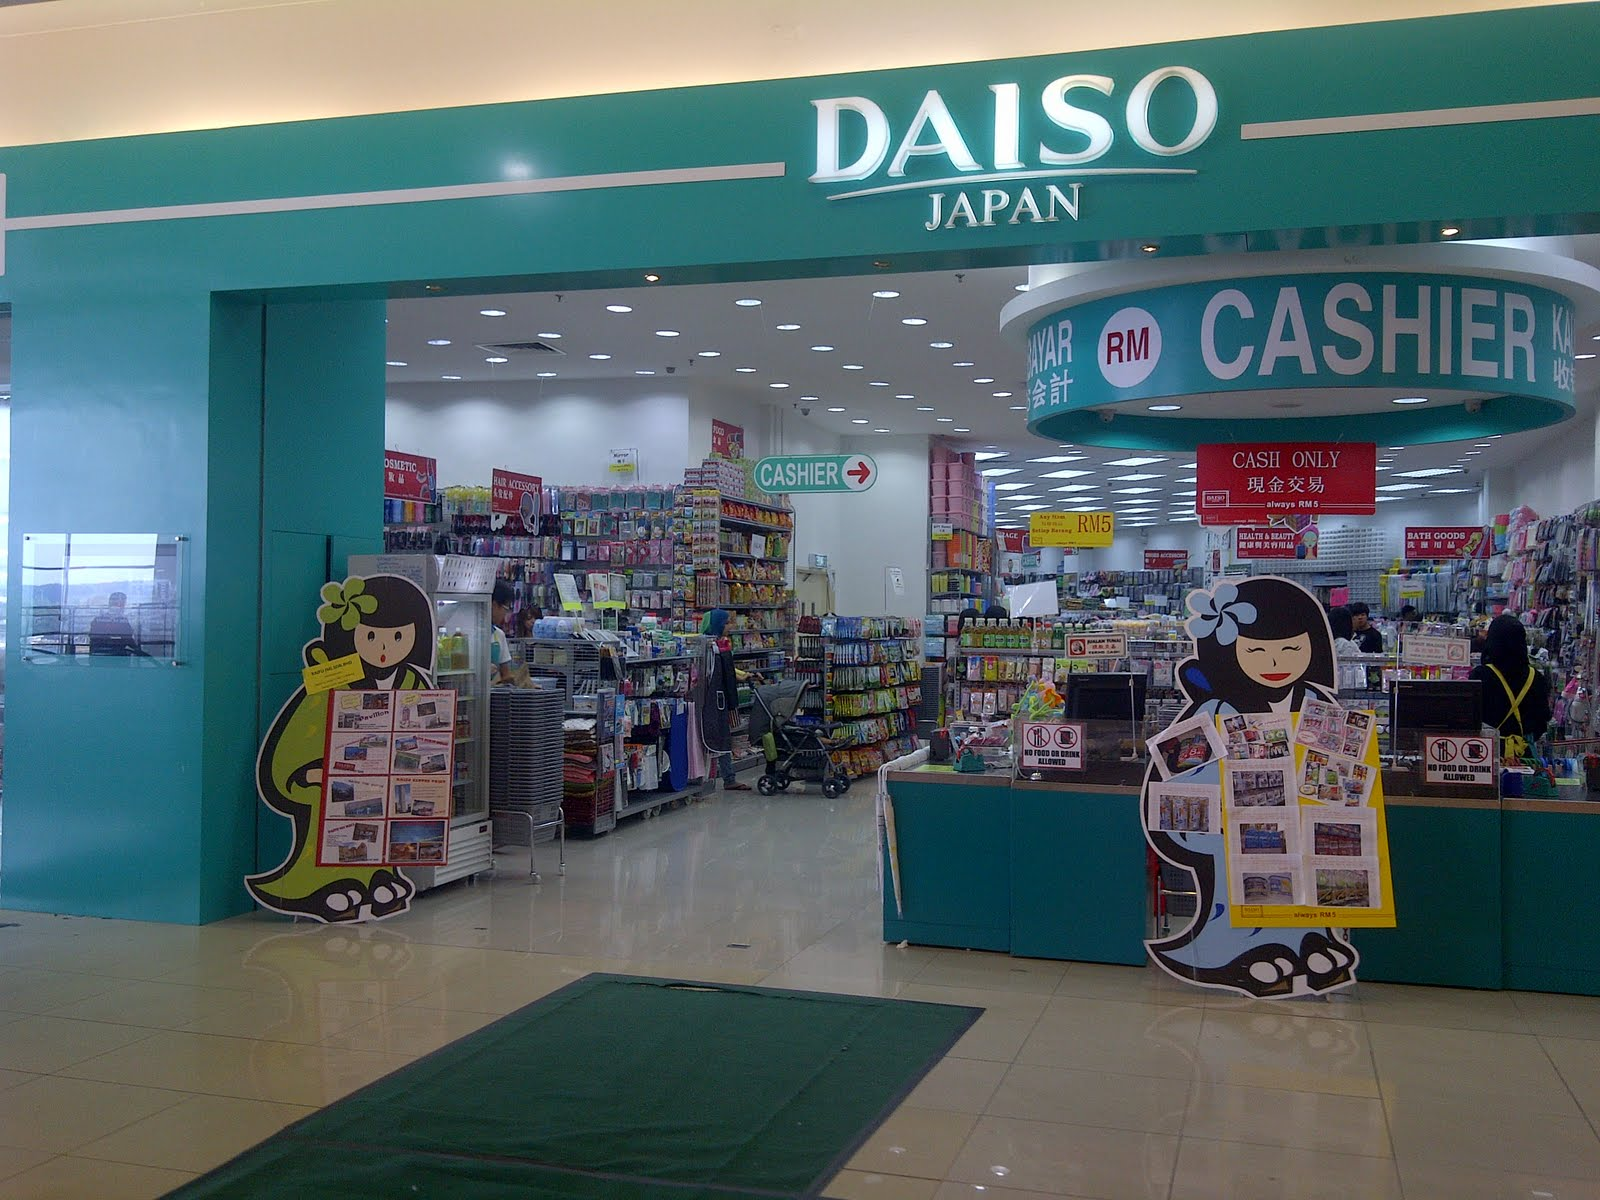 daiso Complete your the daiso collection discover what's missing in your the daiso discography shop the daiso vinyl and cds.